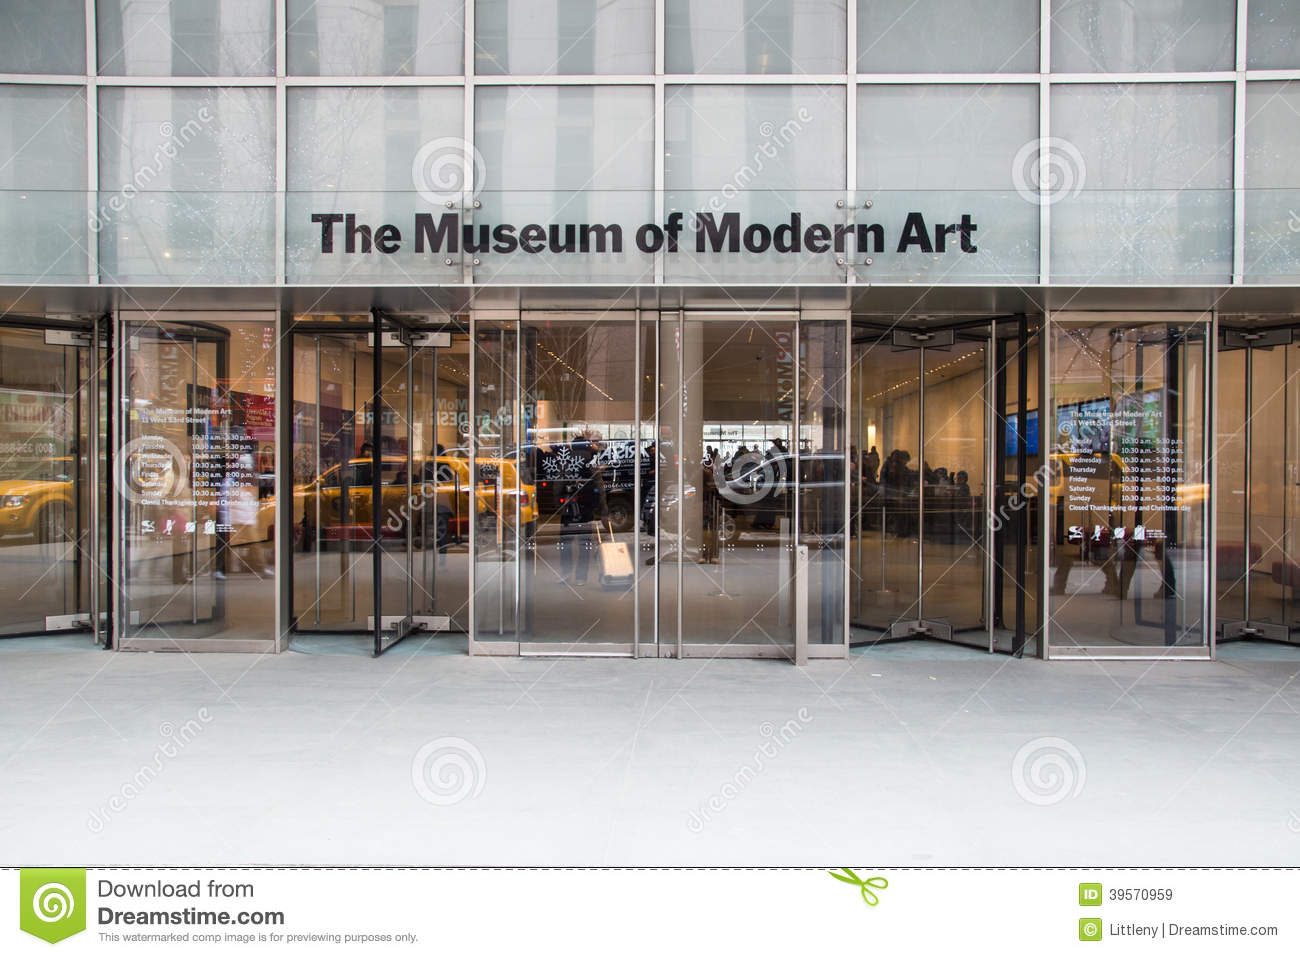 Mordern of art museume clipart.